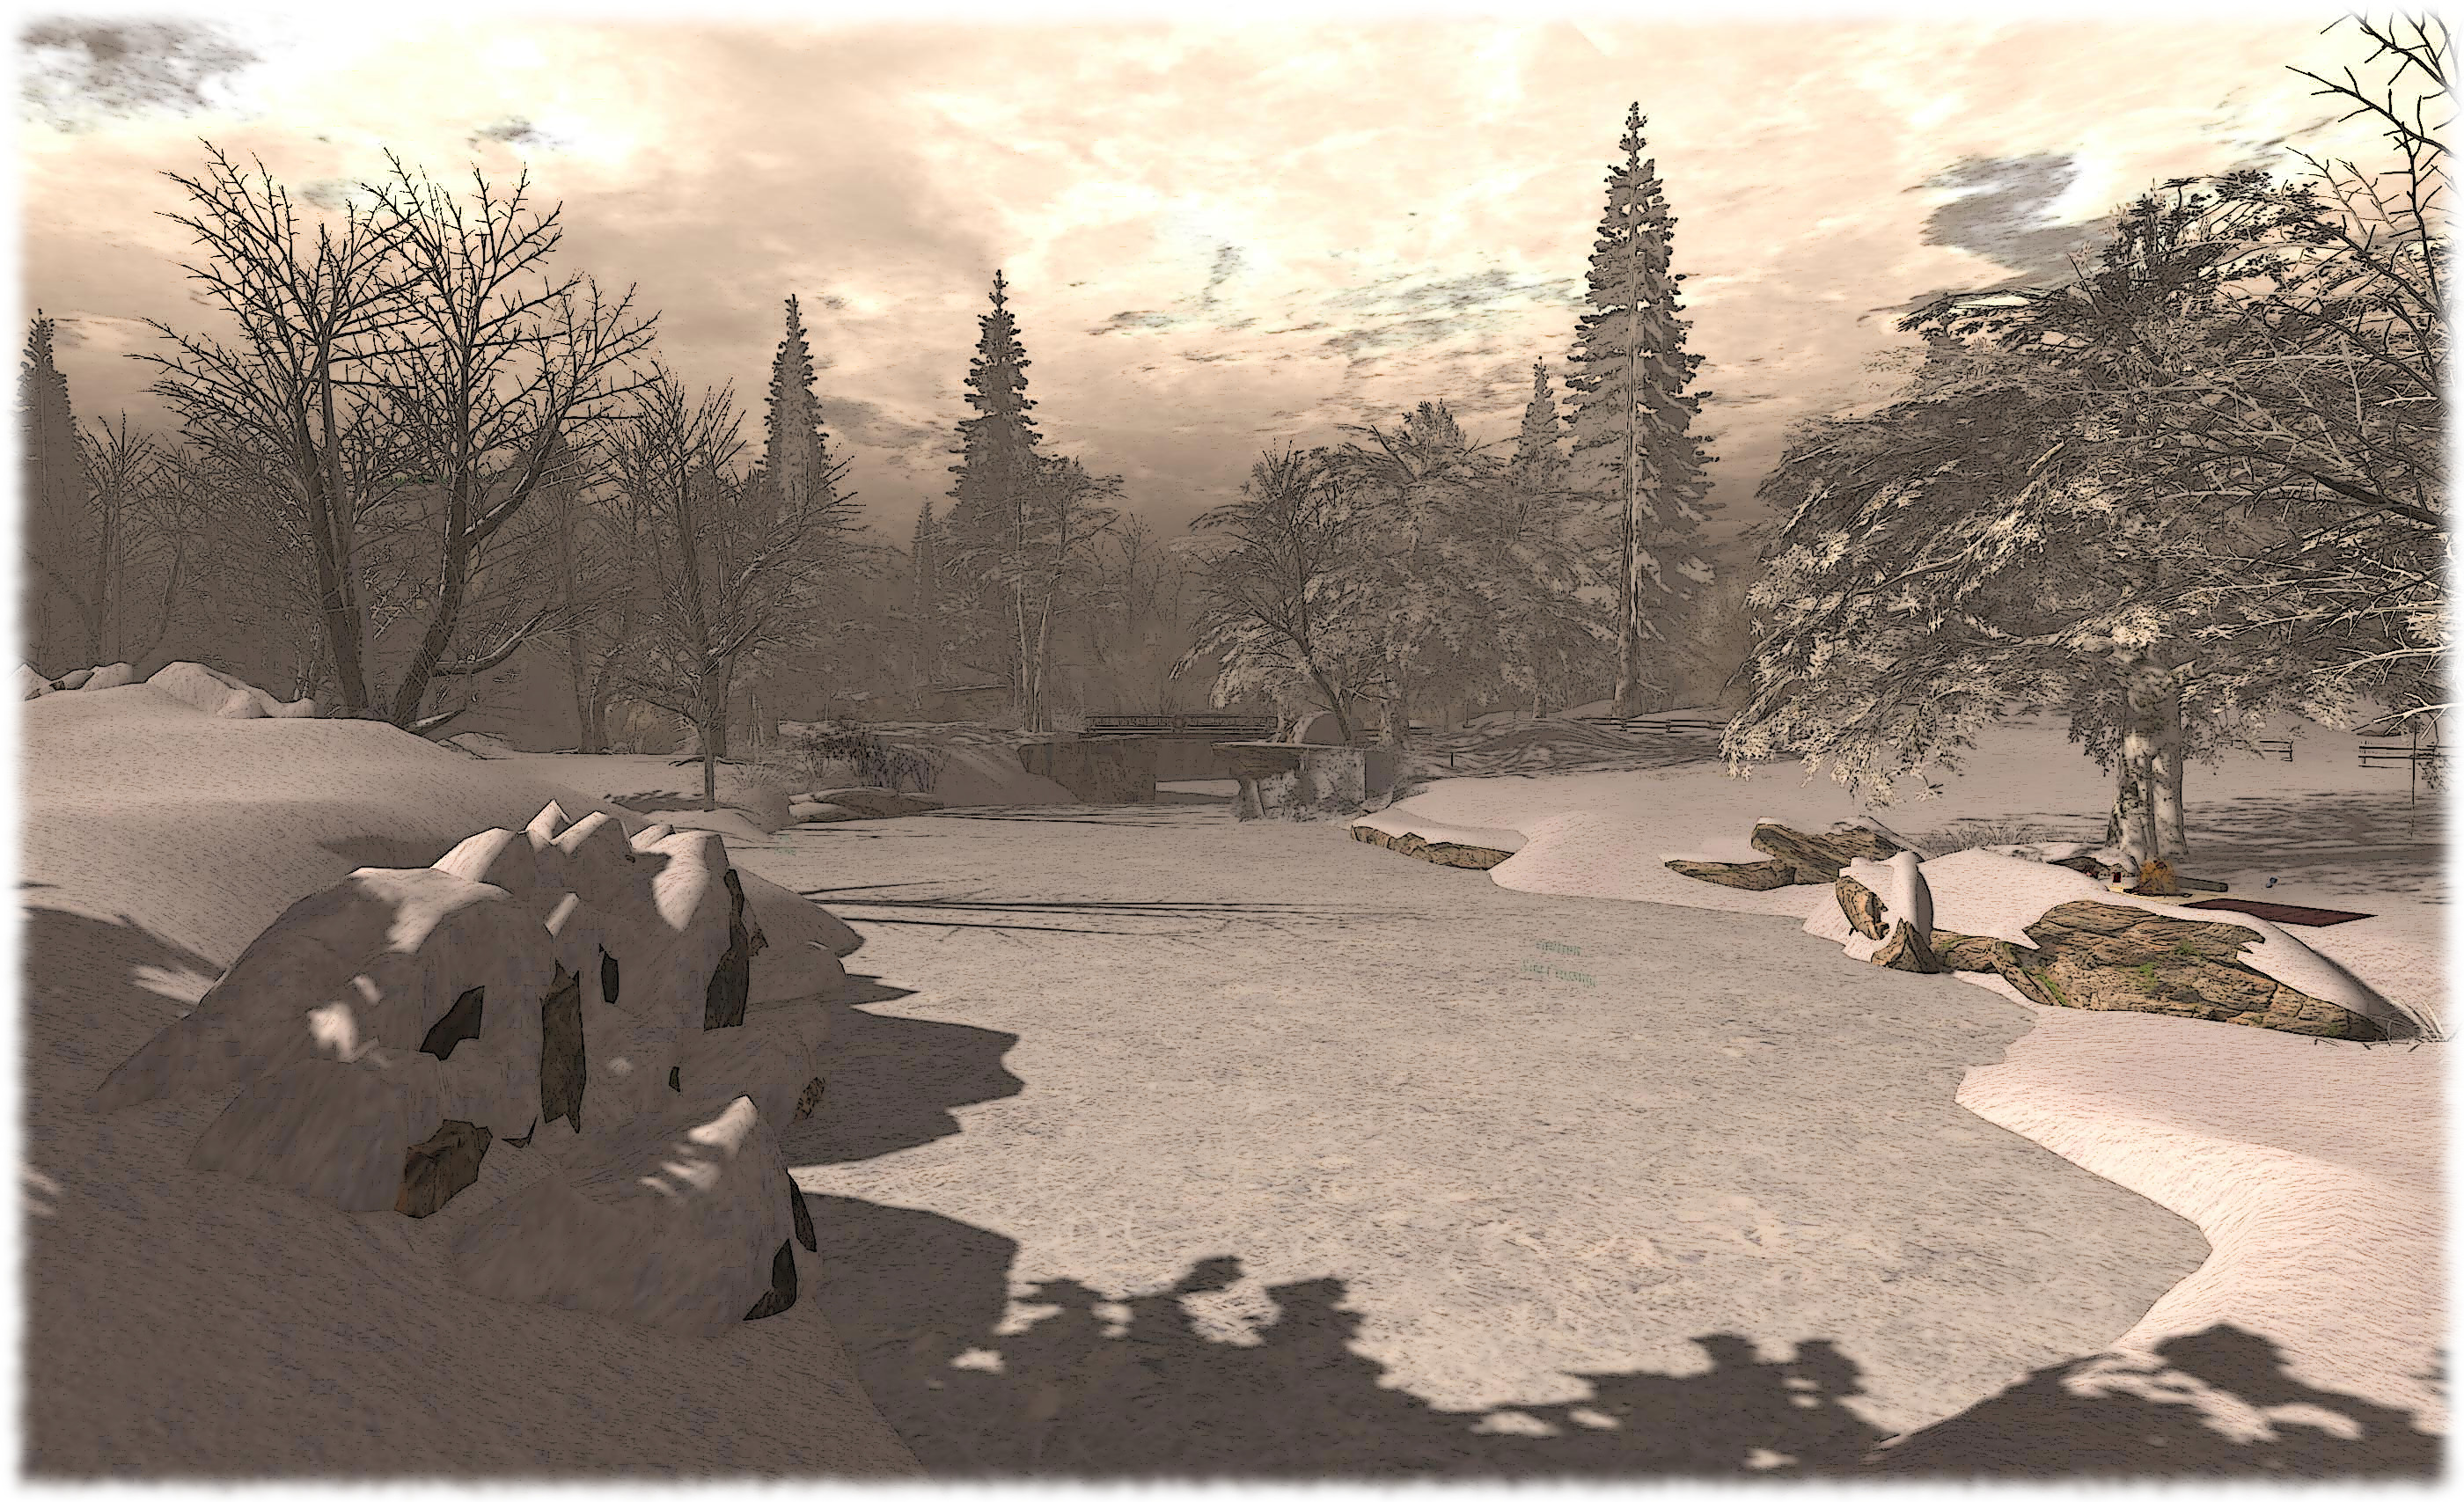 Calas Galadhon Parklands, December 2013